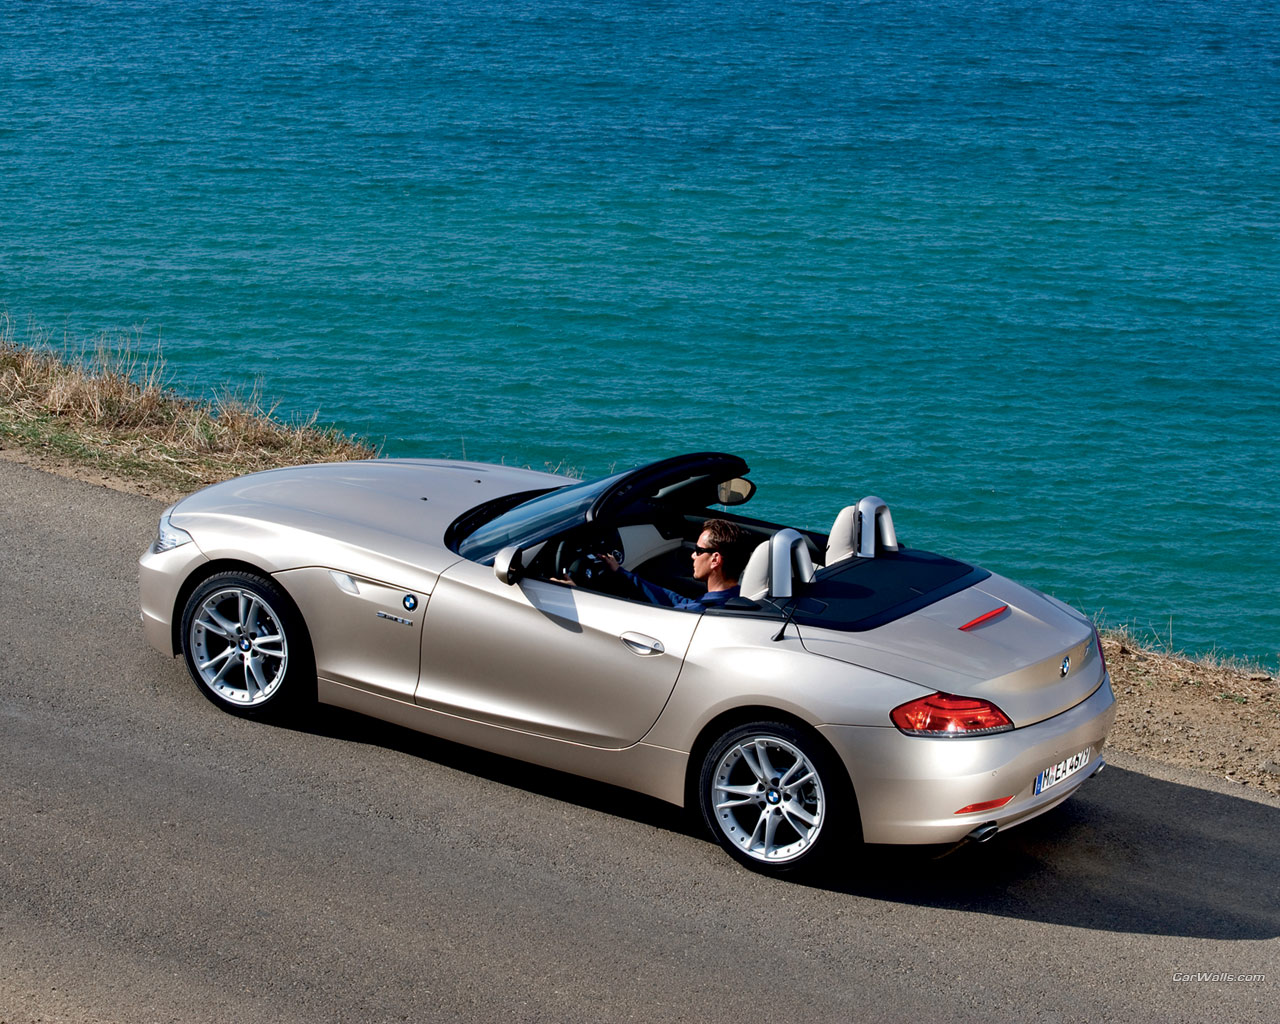 Bmw Z4 Roadster 1280x1024 B67 Tapety Na Pulpit